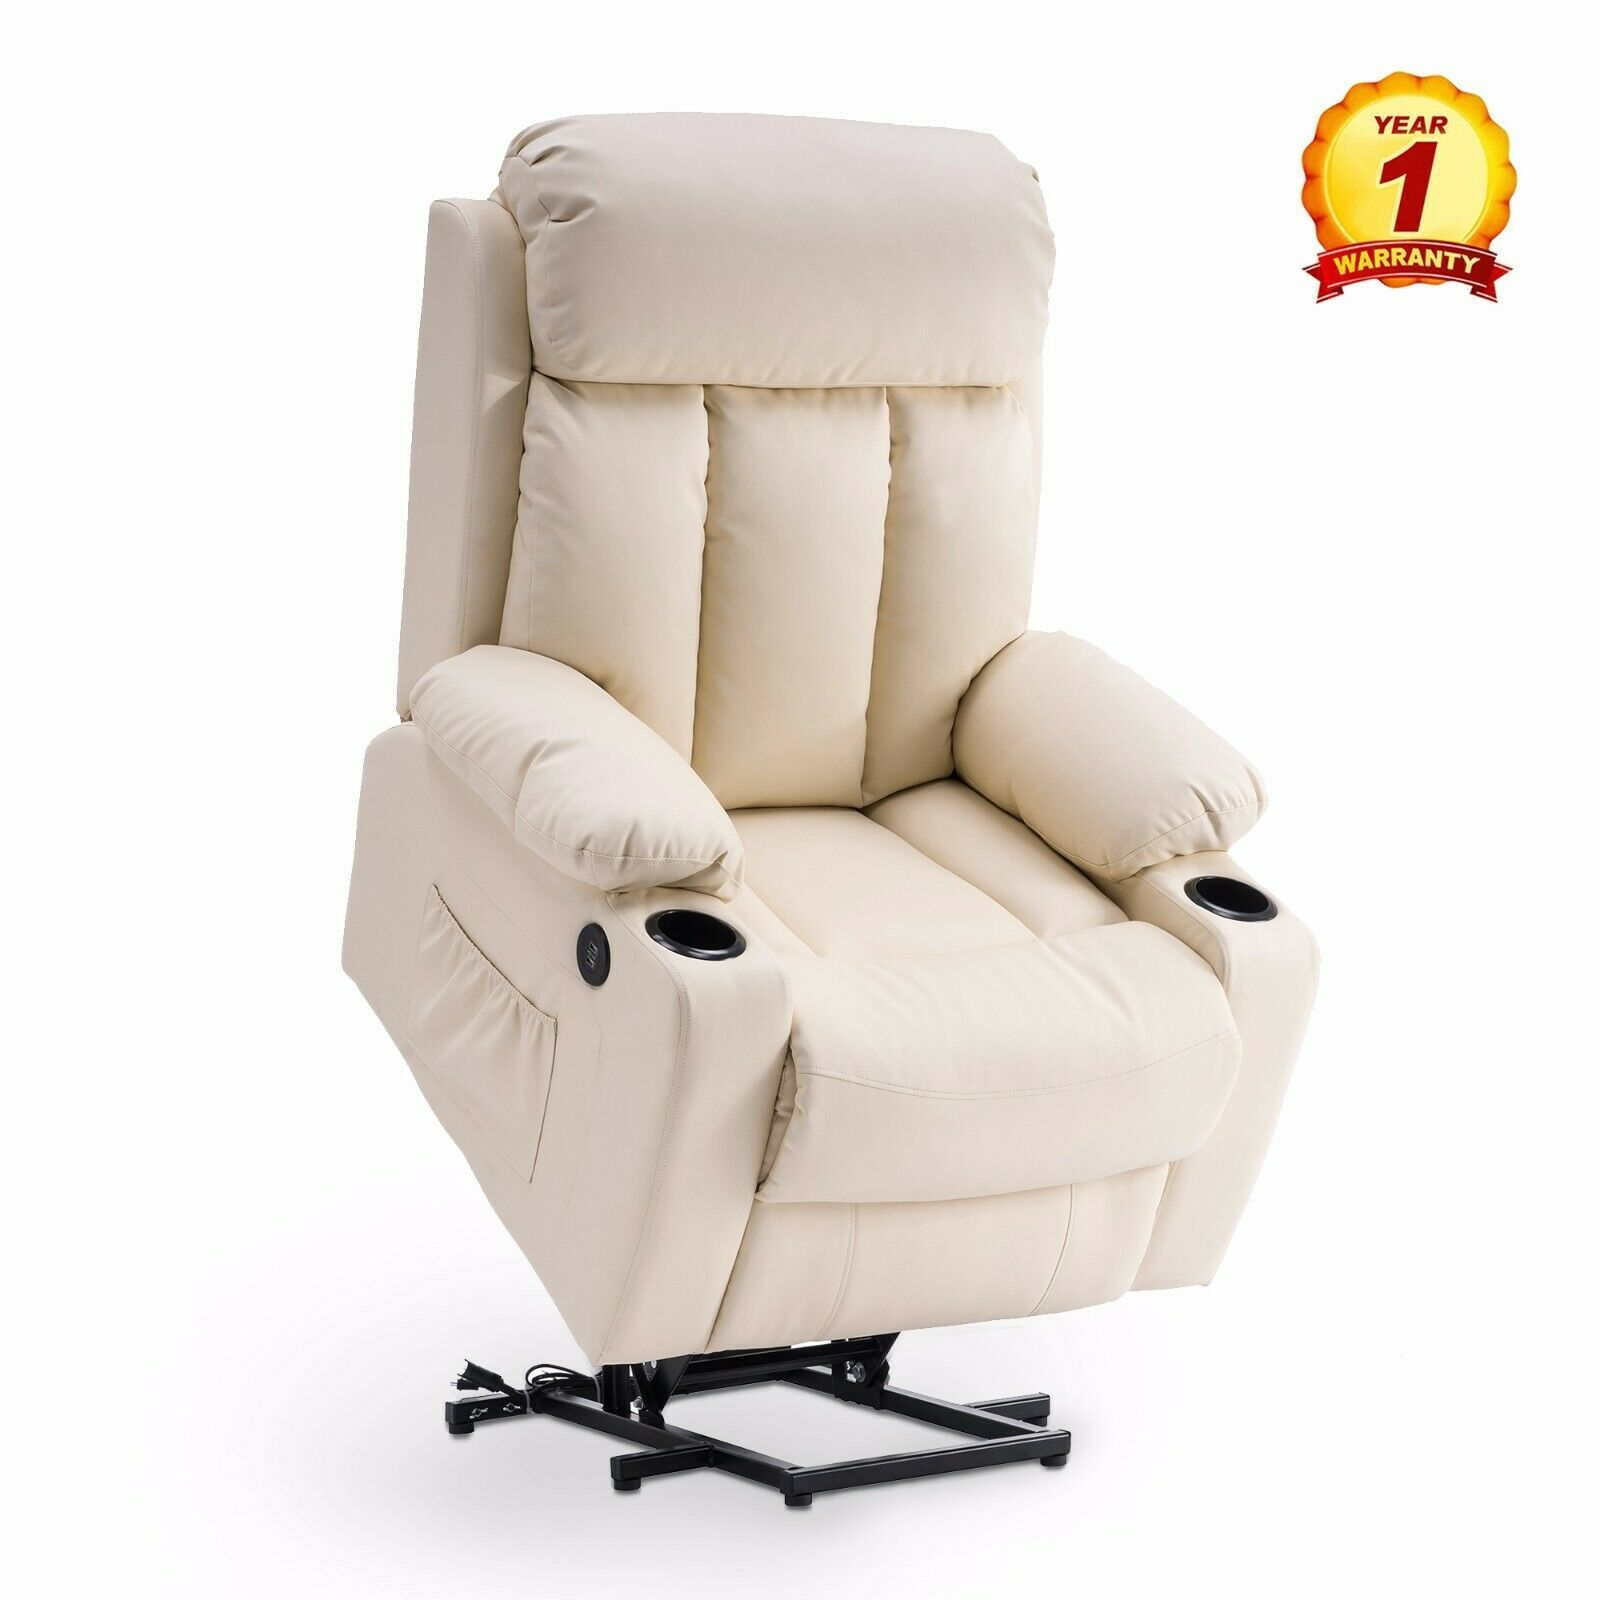 Oversized Power Lift Recliner Electric Chair Sofa For Elder Tall